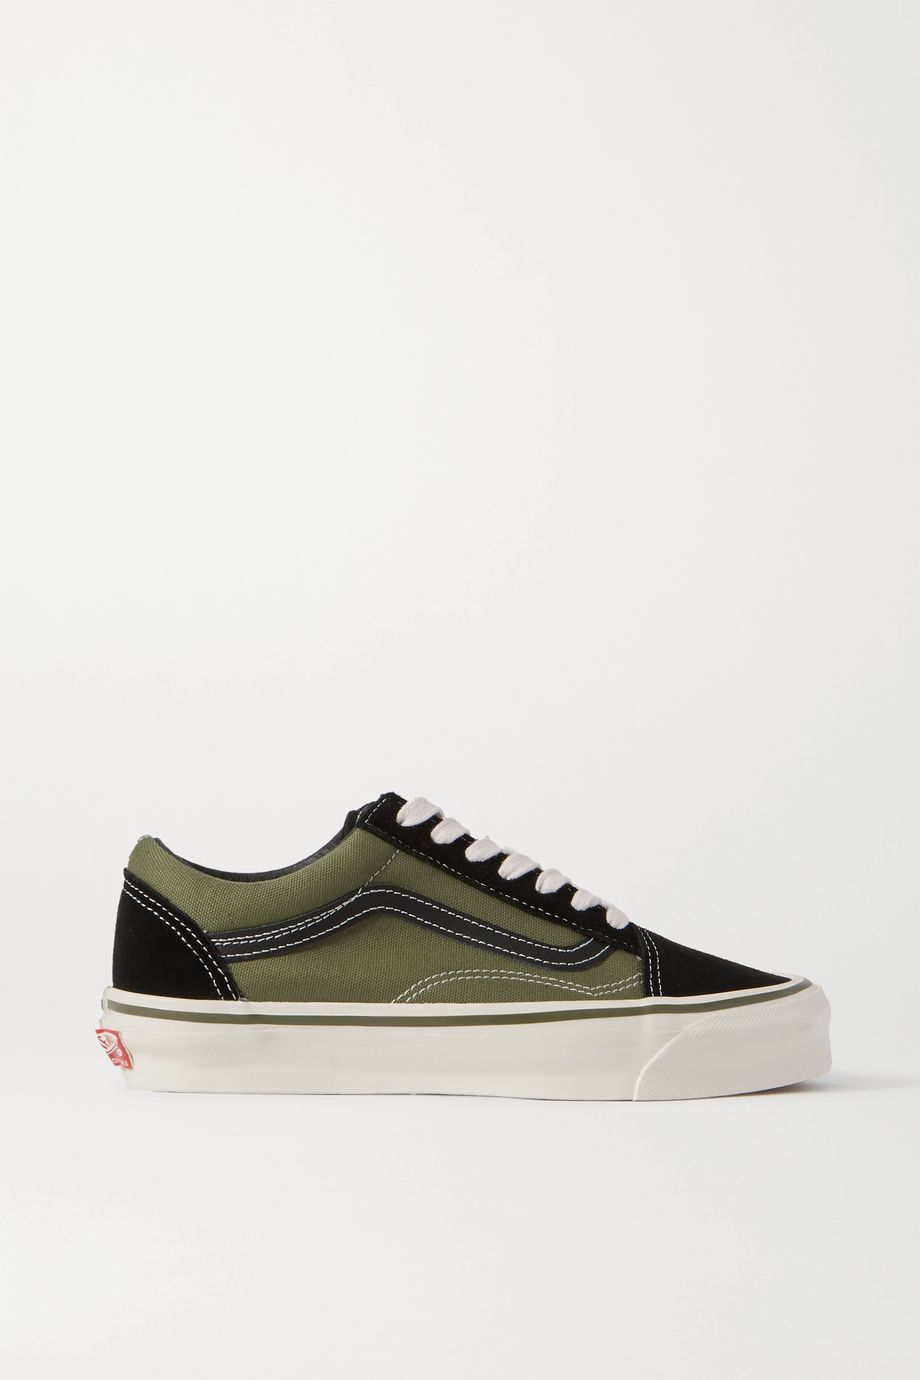 Vans Old Skool two-tone leather-trimmed canvas and suede sneakers